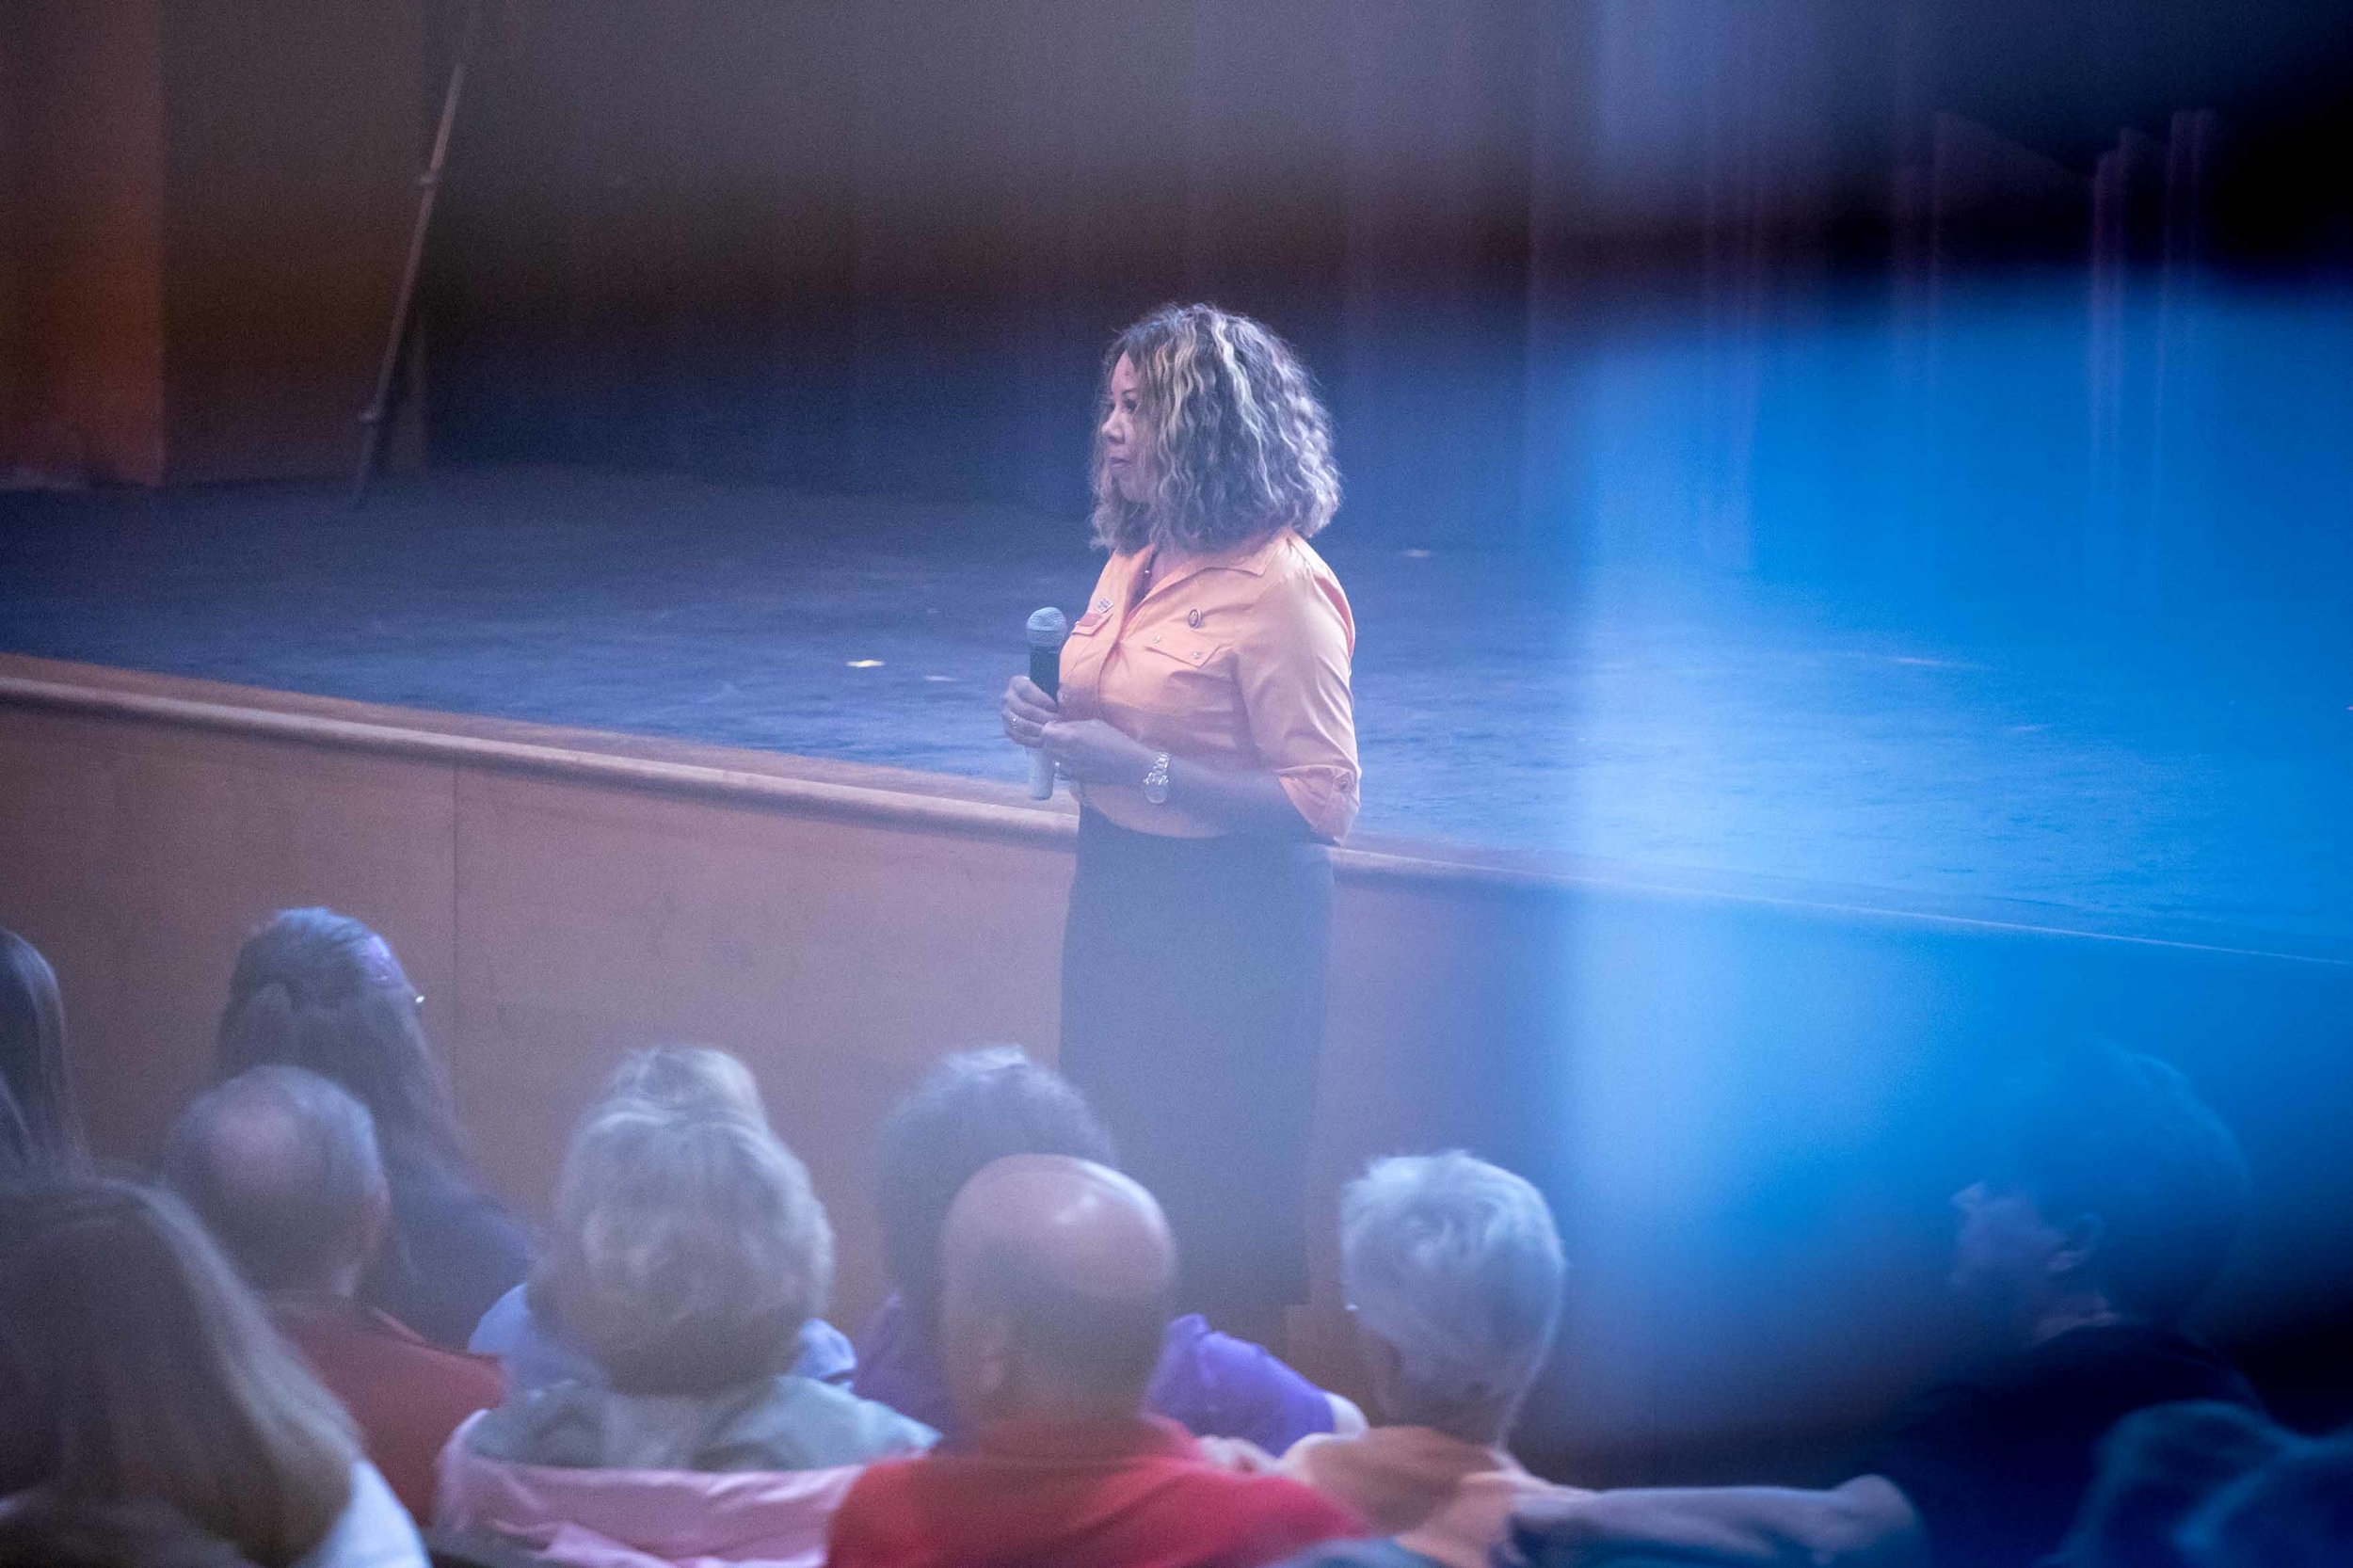 Rep. Lucy McBath, D-Ga., speaks during a town hall at Dunwoody High School on Saturday, June 8, 2019 in Dunwoody, Ga. Branden Camp for AJC